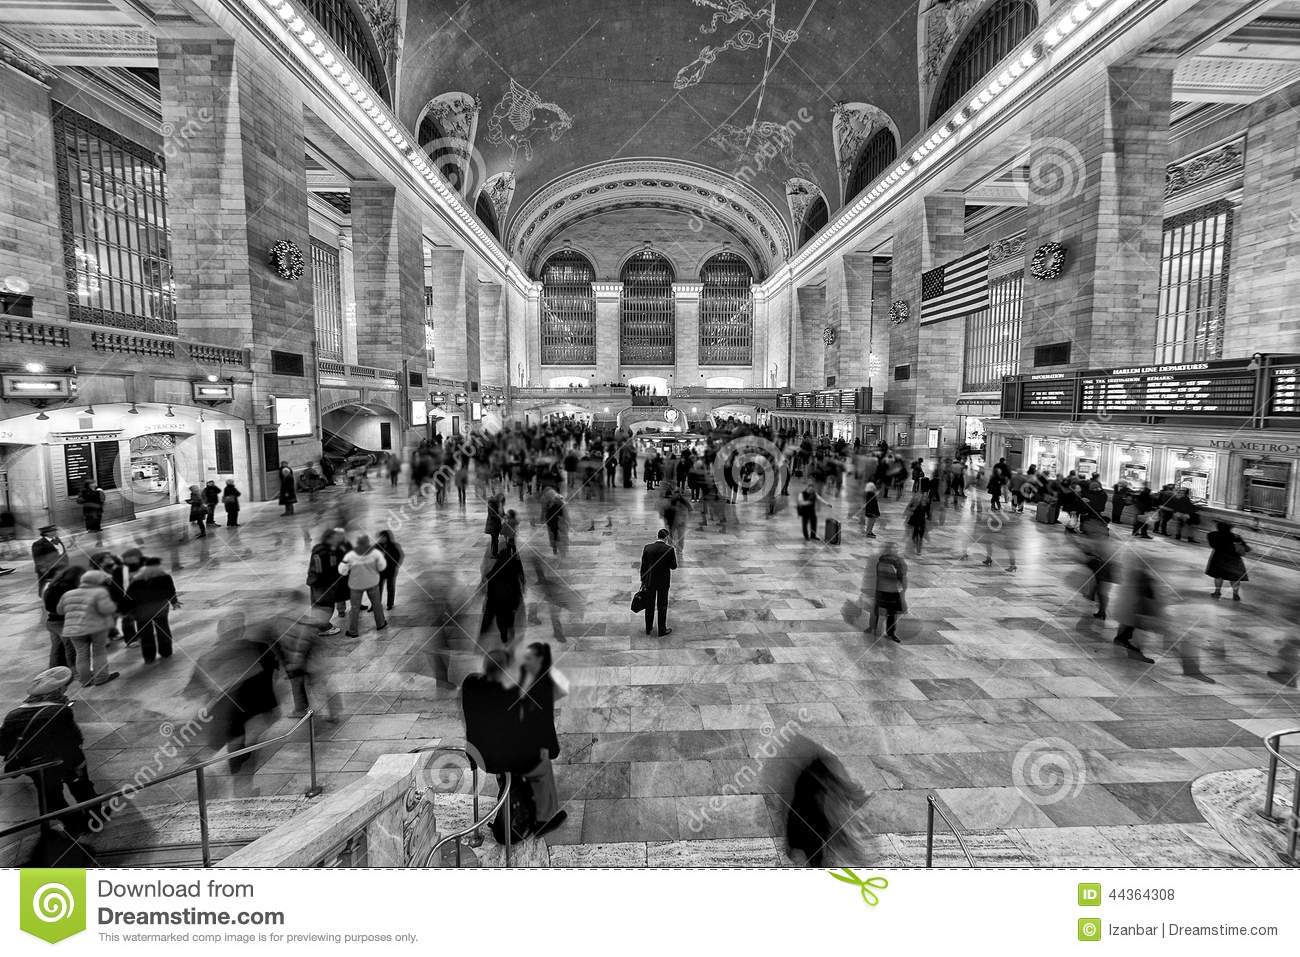 Take the Train to GRAND CENTRAL NOIR